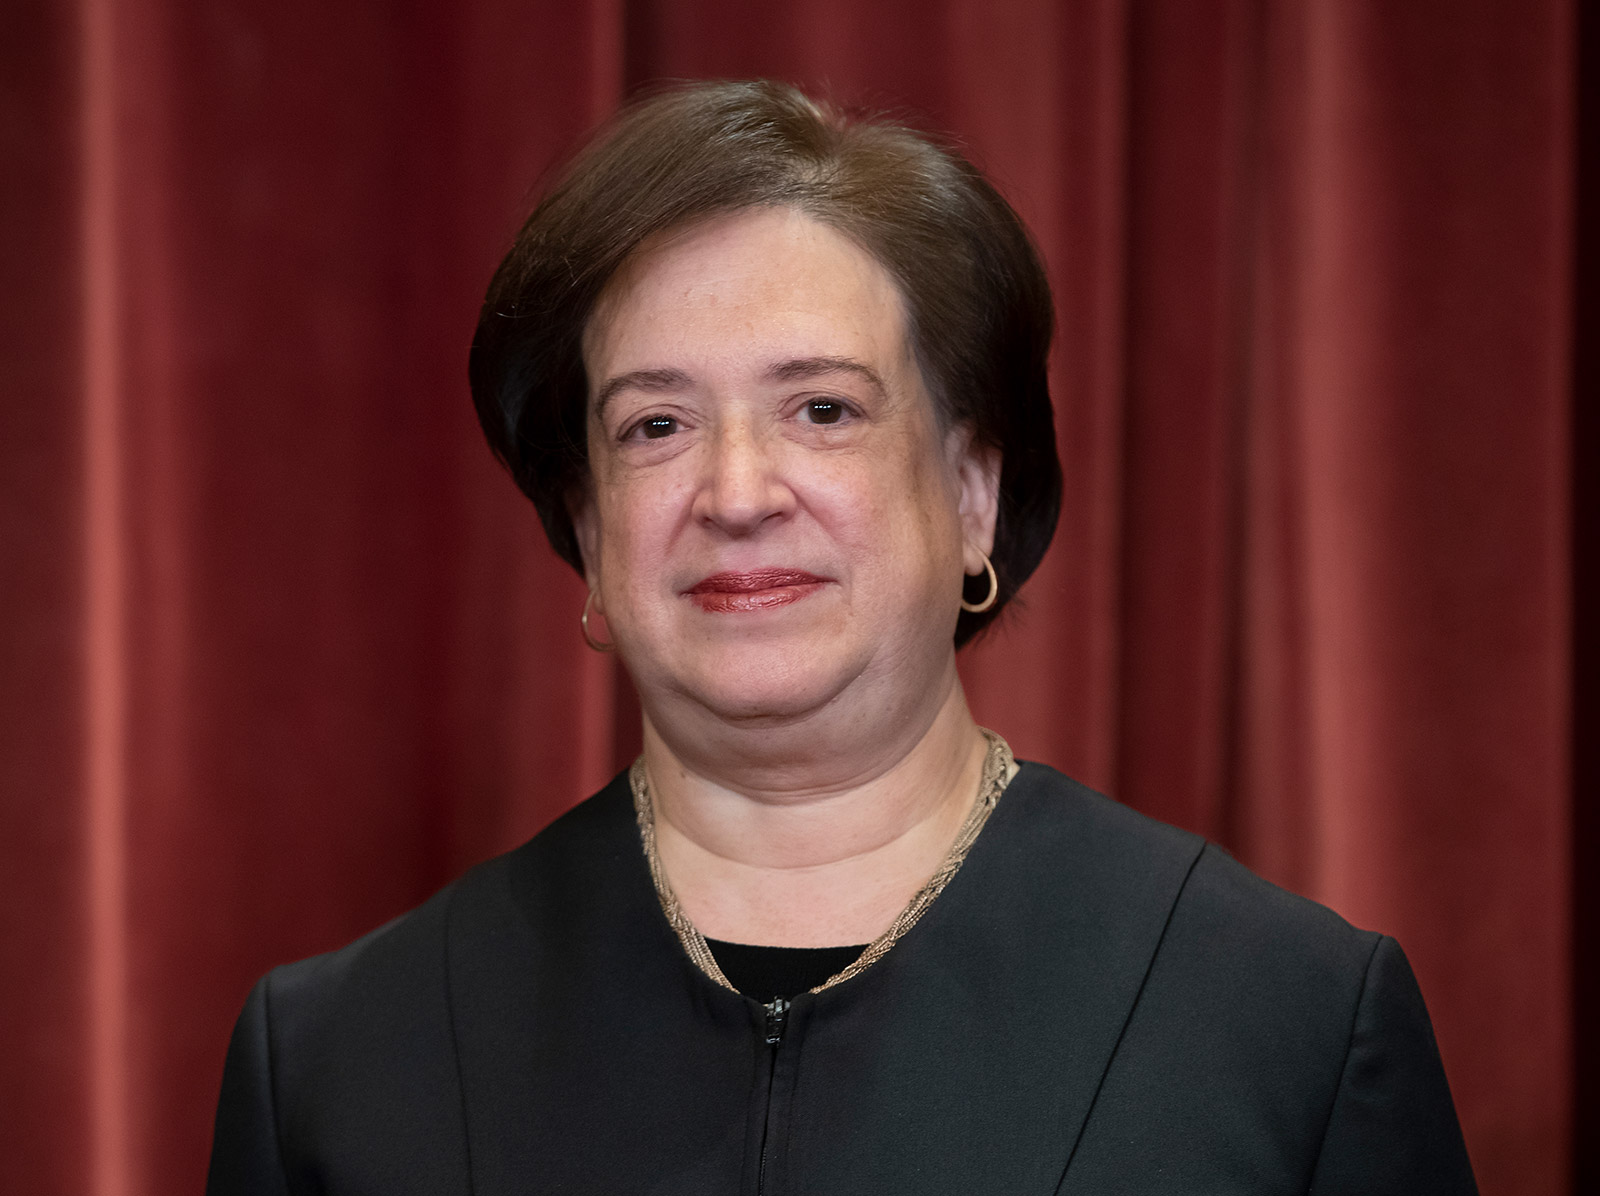 Justice Elena Kagan poses for the official Supreme Court group photo in 2018.